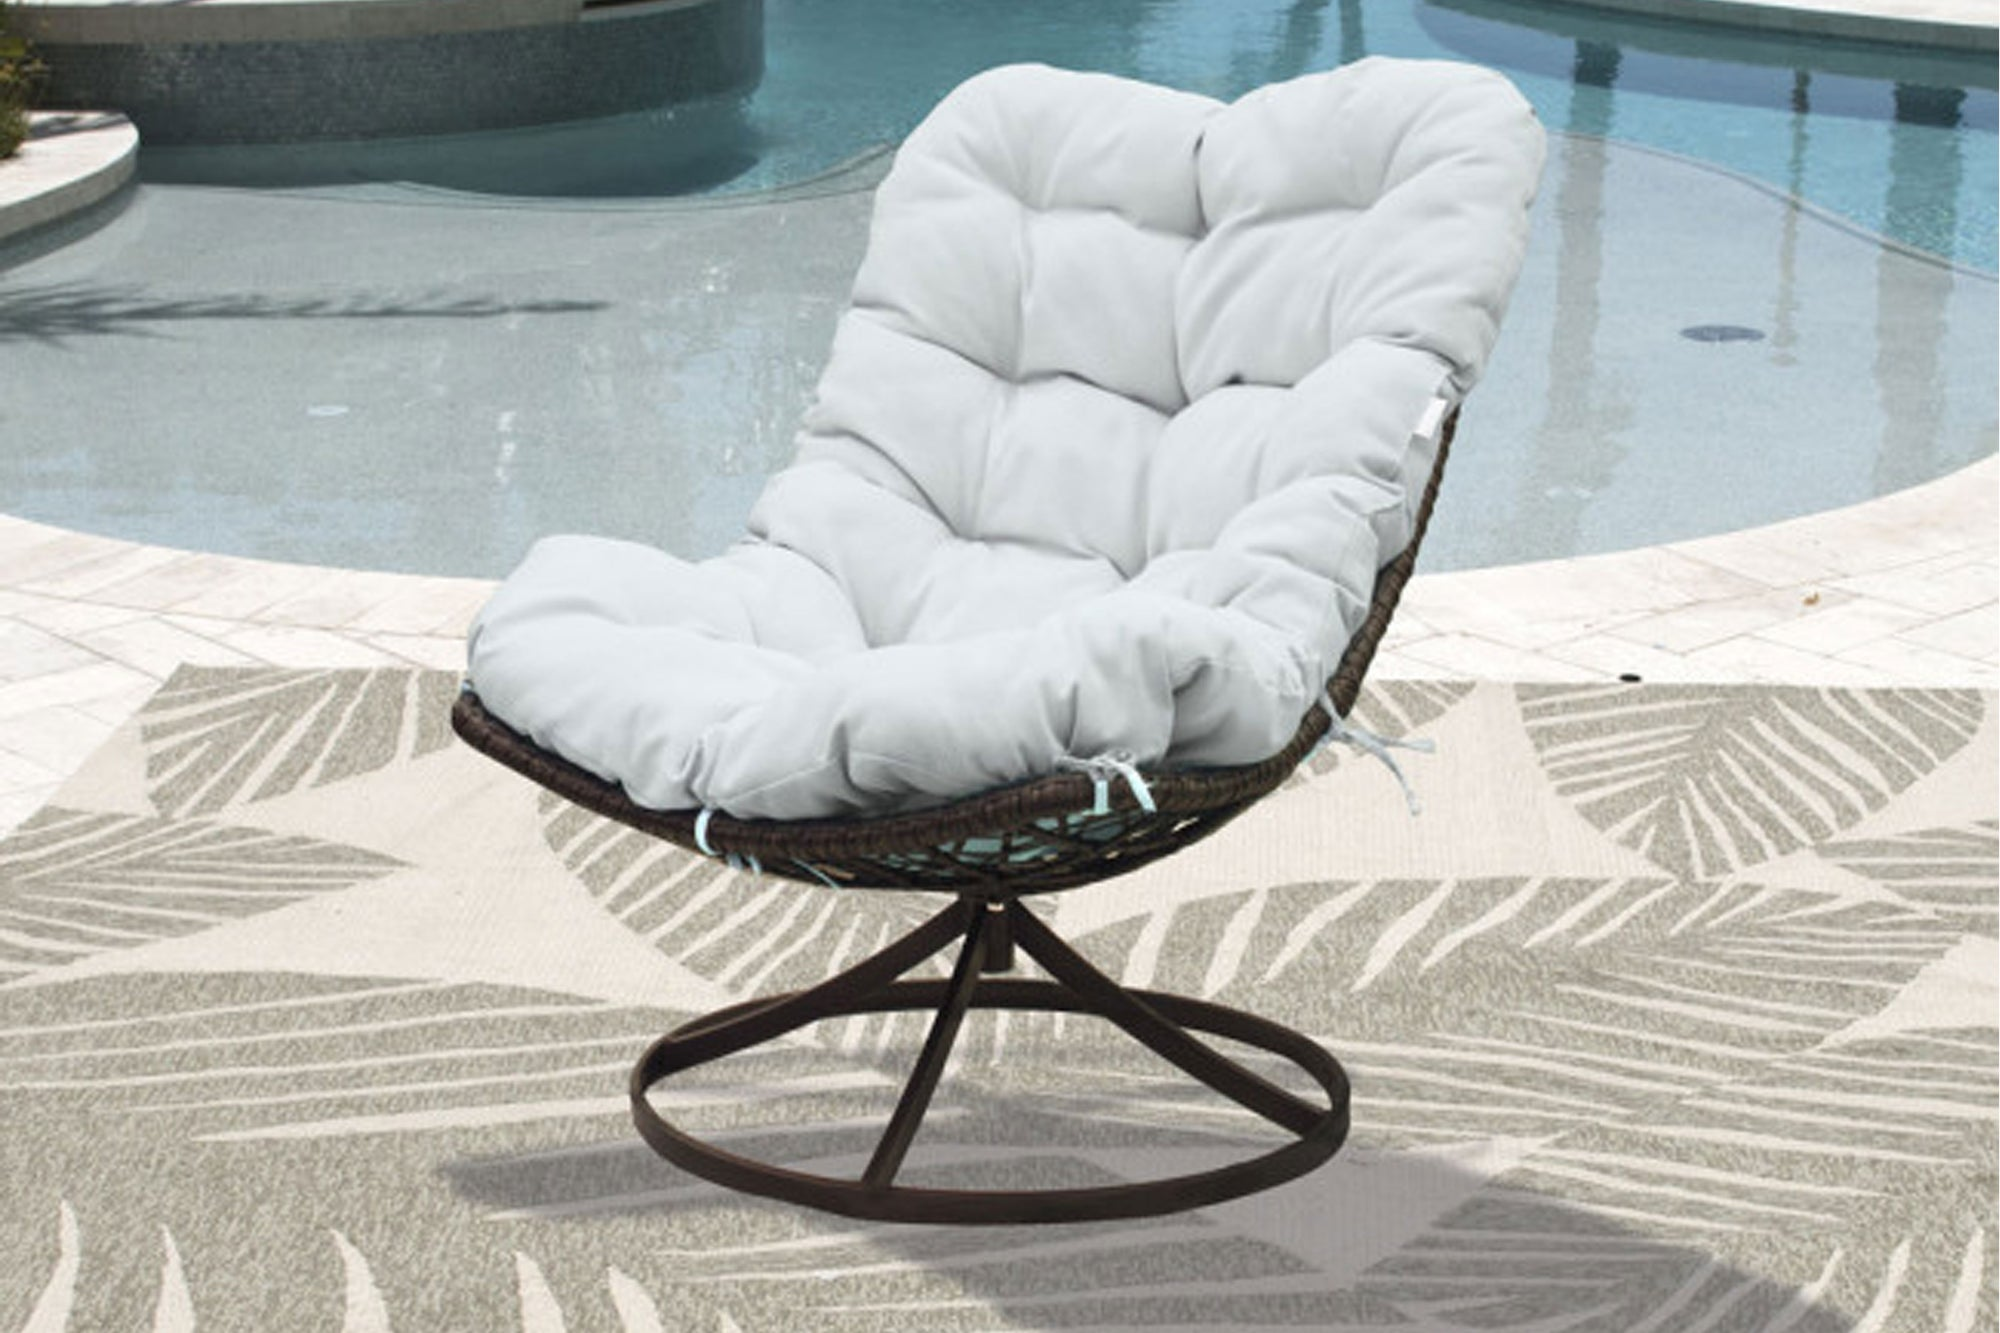 Panama Jack Outdoor Swivel Chair w/off-white cushion